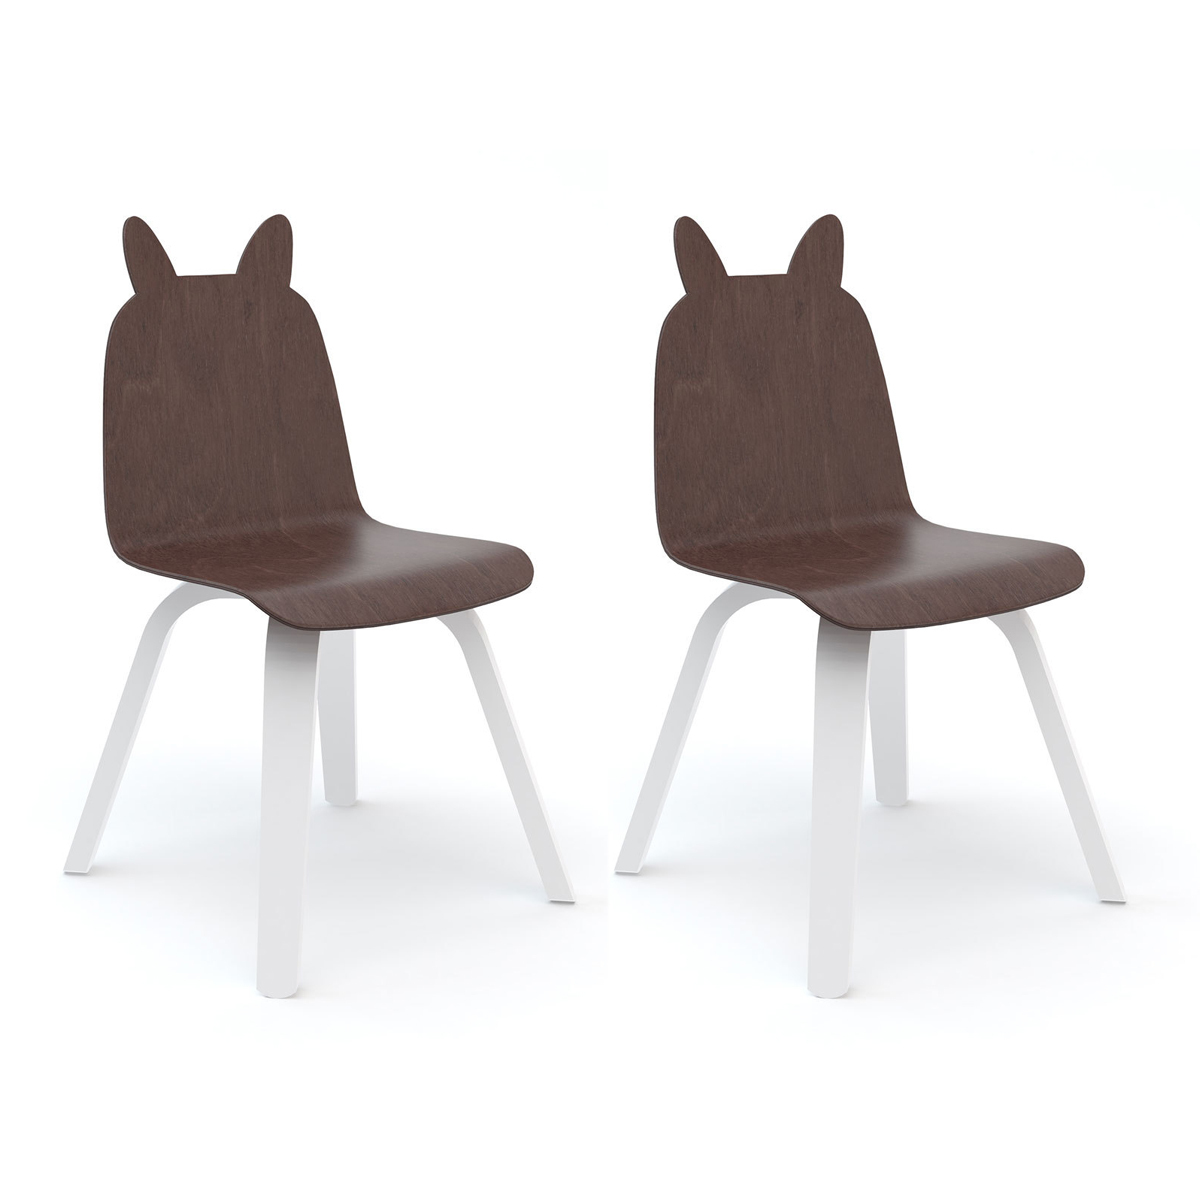 Table & Chaise Lot de 2 Chaises Play Lapin - Noyer Lot de 2 Chaises Play Lapin - Noyer